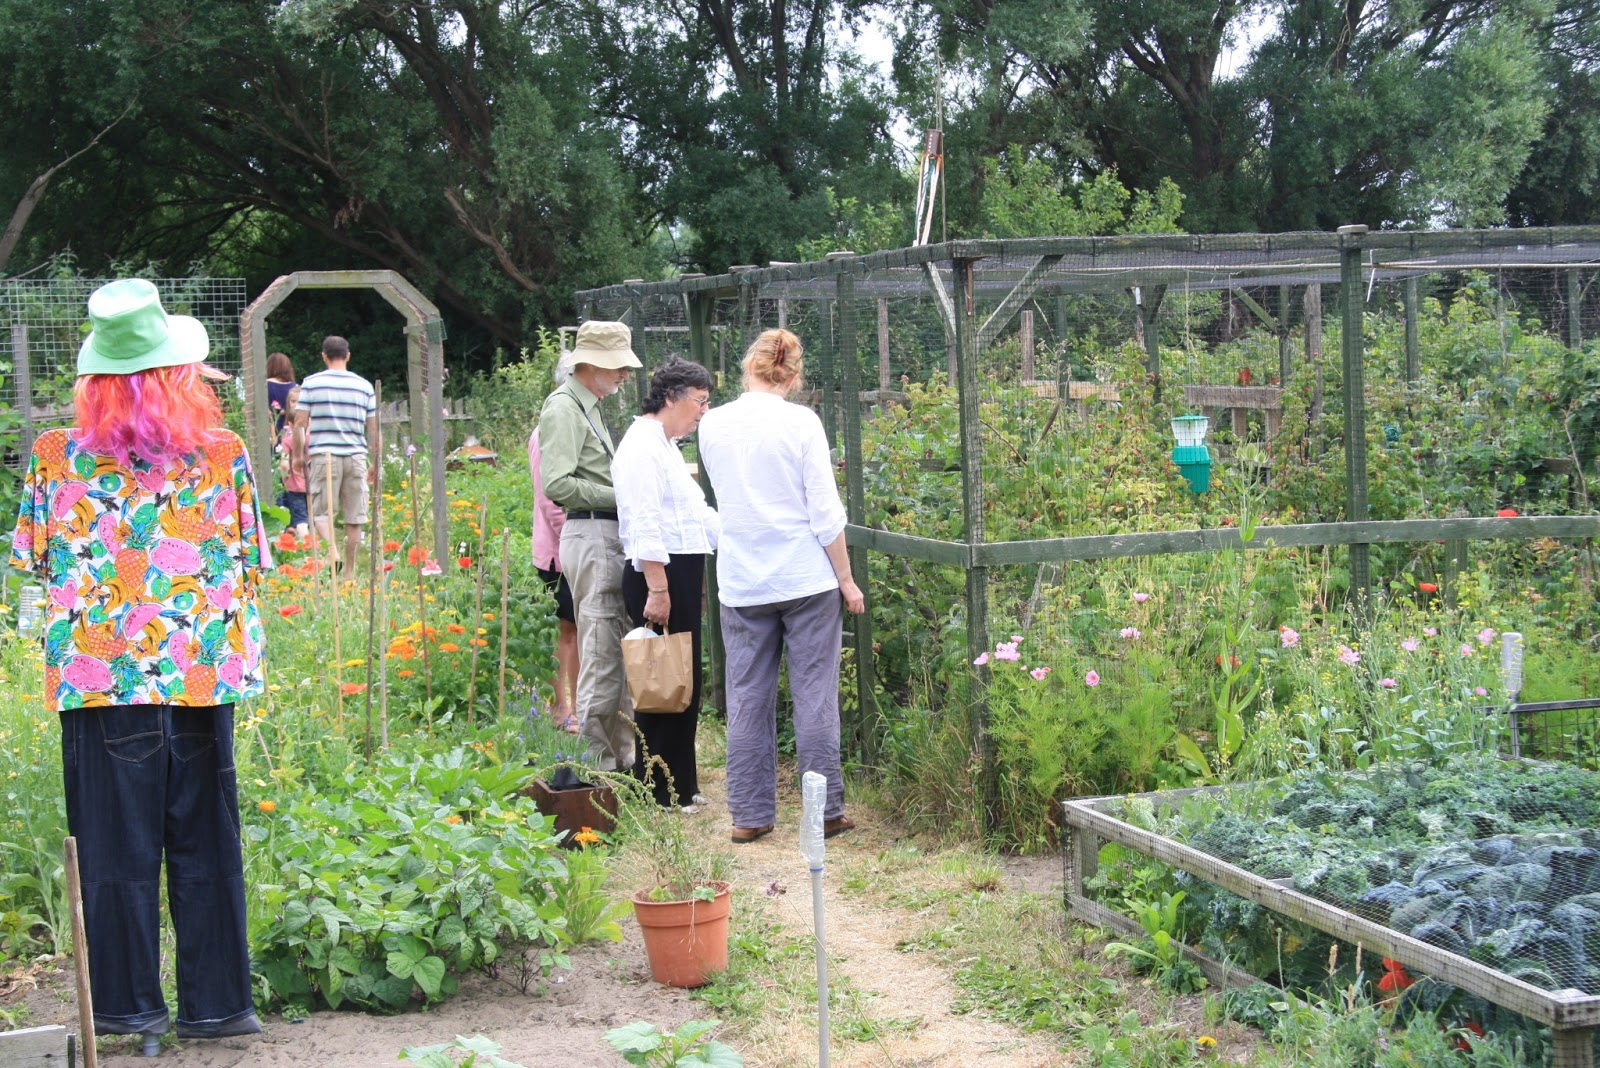 1000 images about allotments on pinterest allotment for Garden allotment ideas